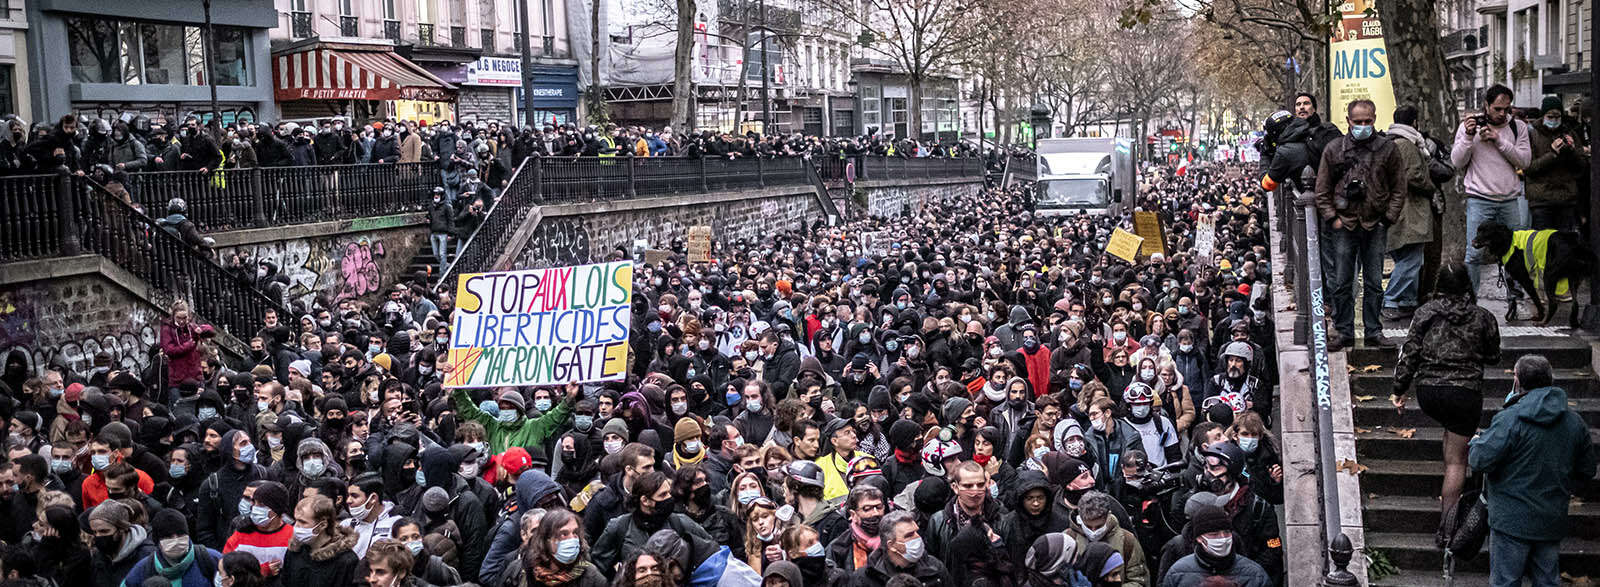 60 000 manifestant·e·s contre les textes liberticides en France, des interpellations arbitraires à Paris